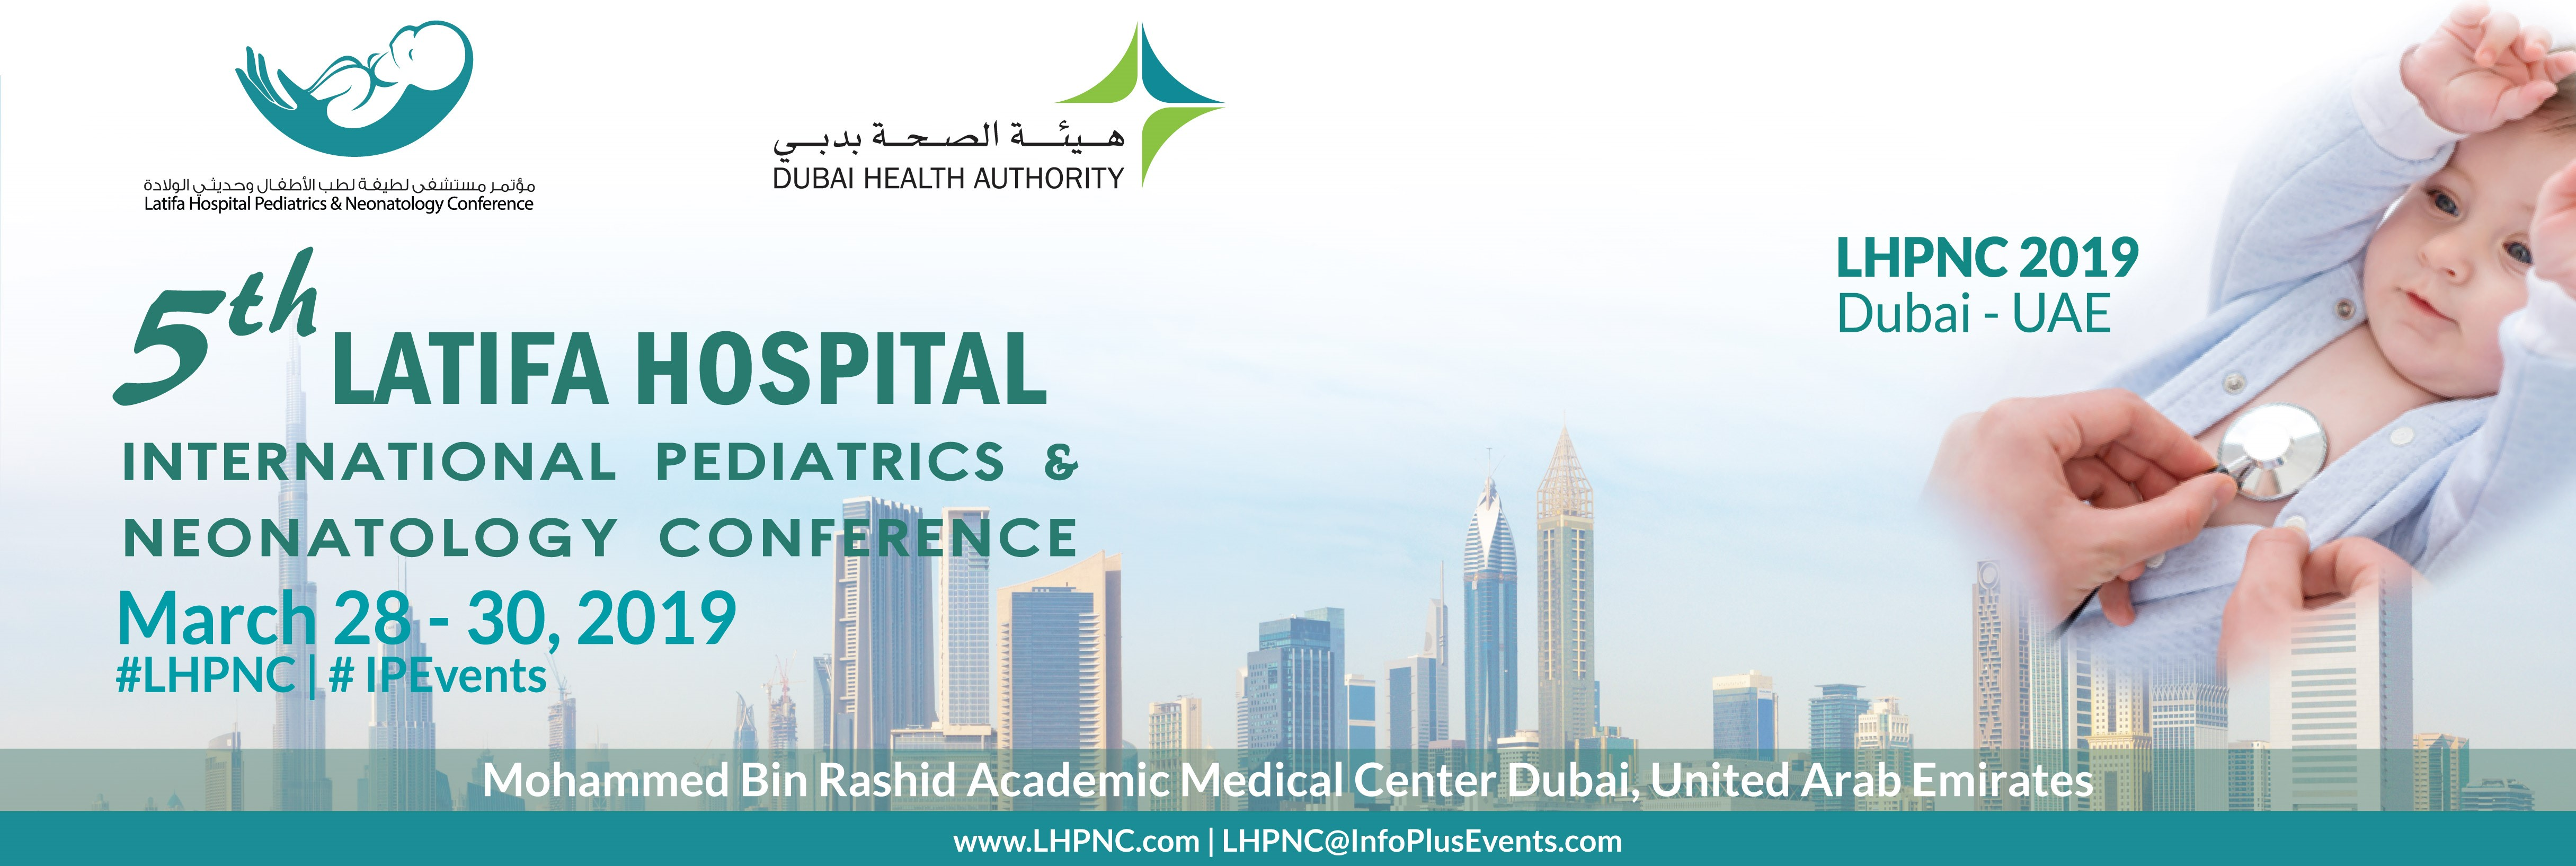 5th Latifa Hospital International Pediatrics & Neonatology Conference, 28th - 30th March, 2019